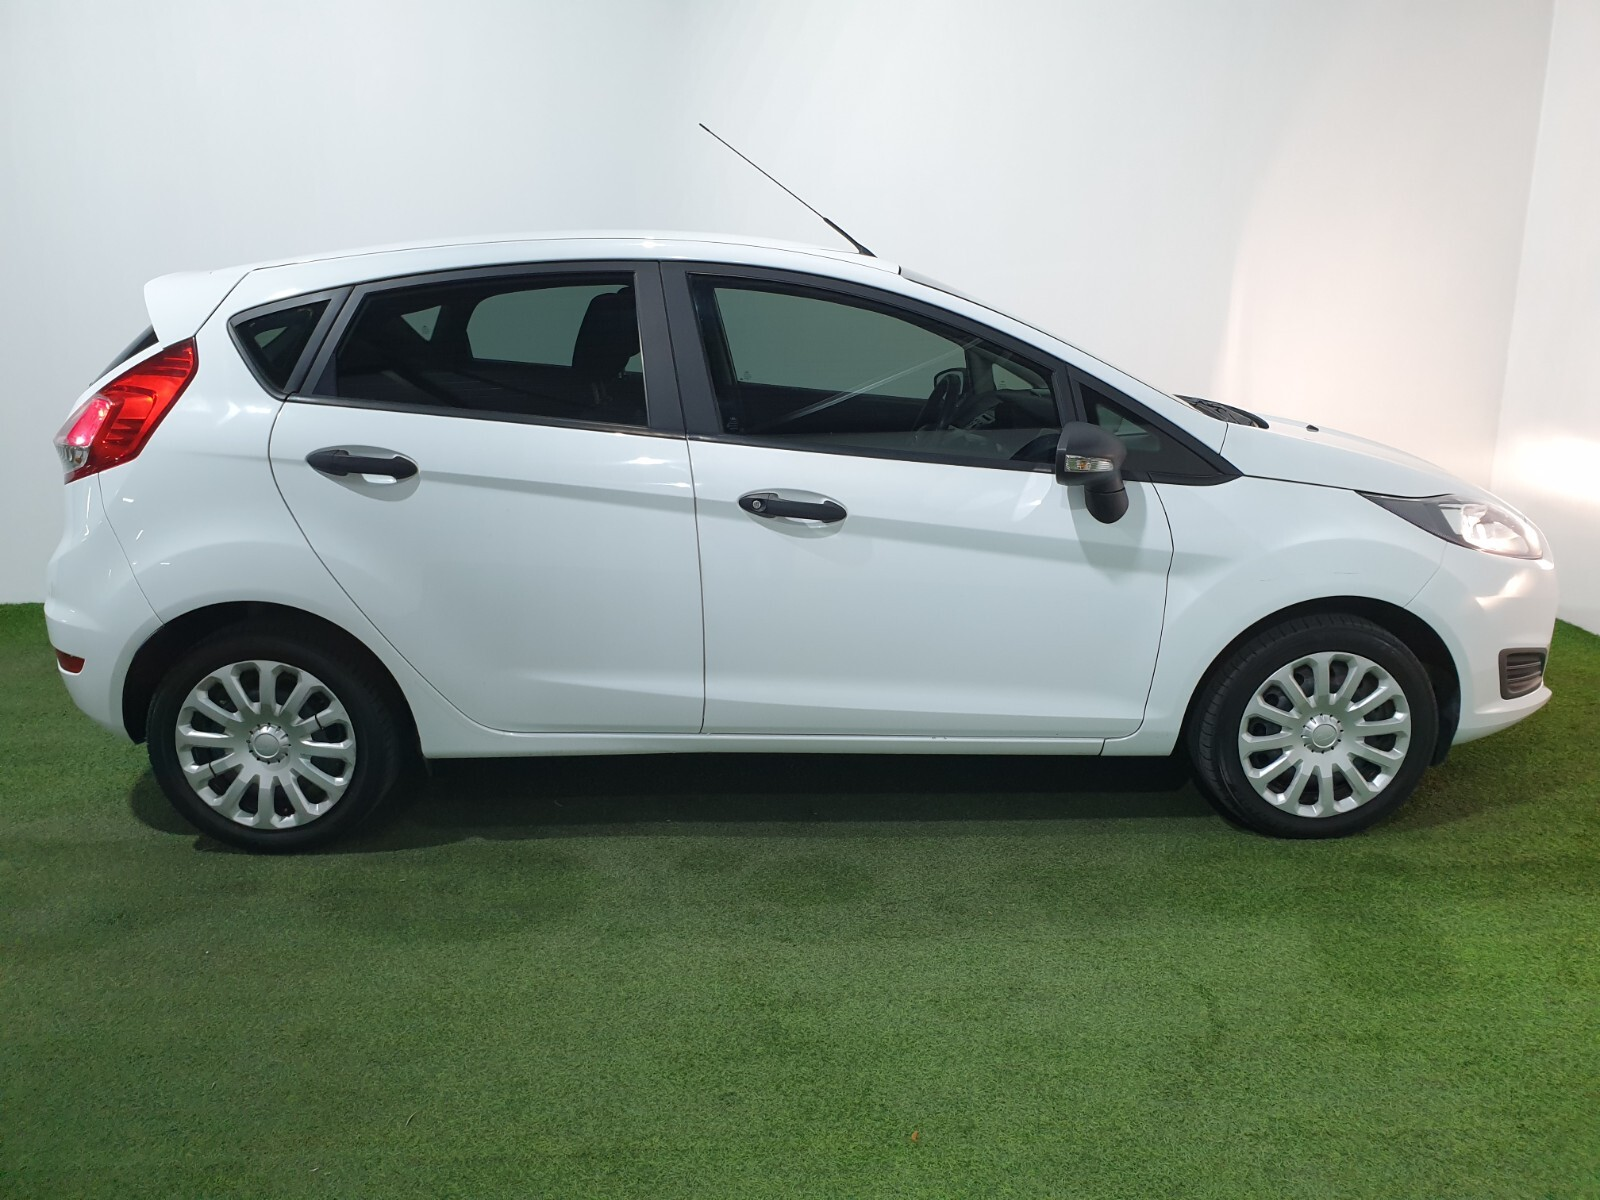 FORD 1.4 AMBIENTE 5 Dr Johannesburg 1327079